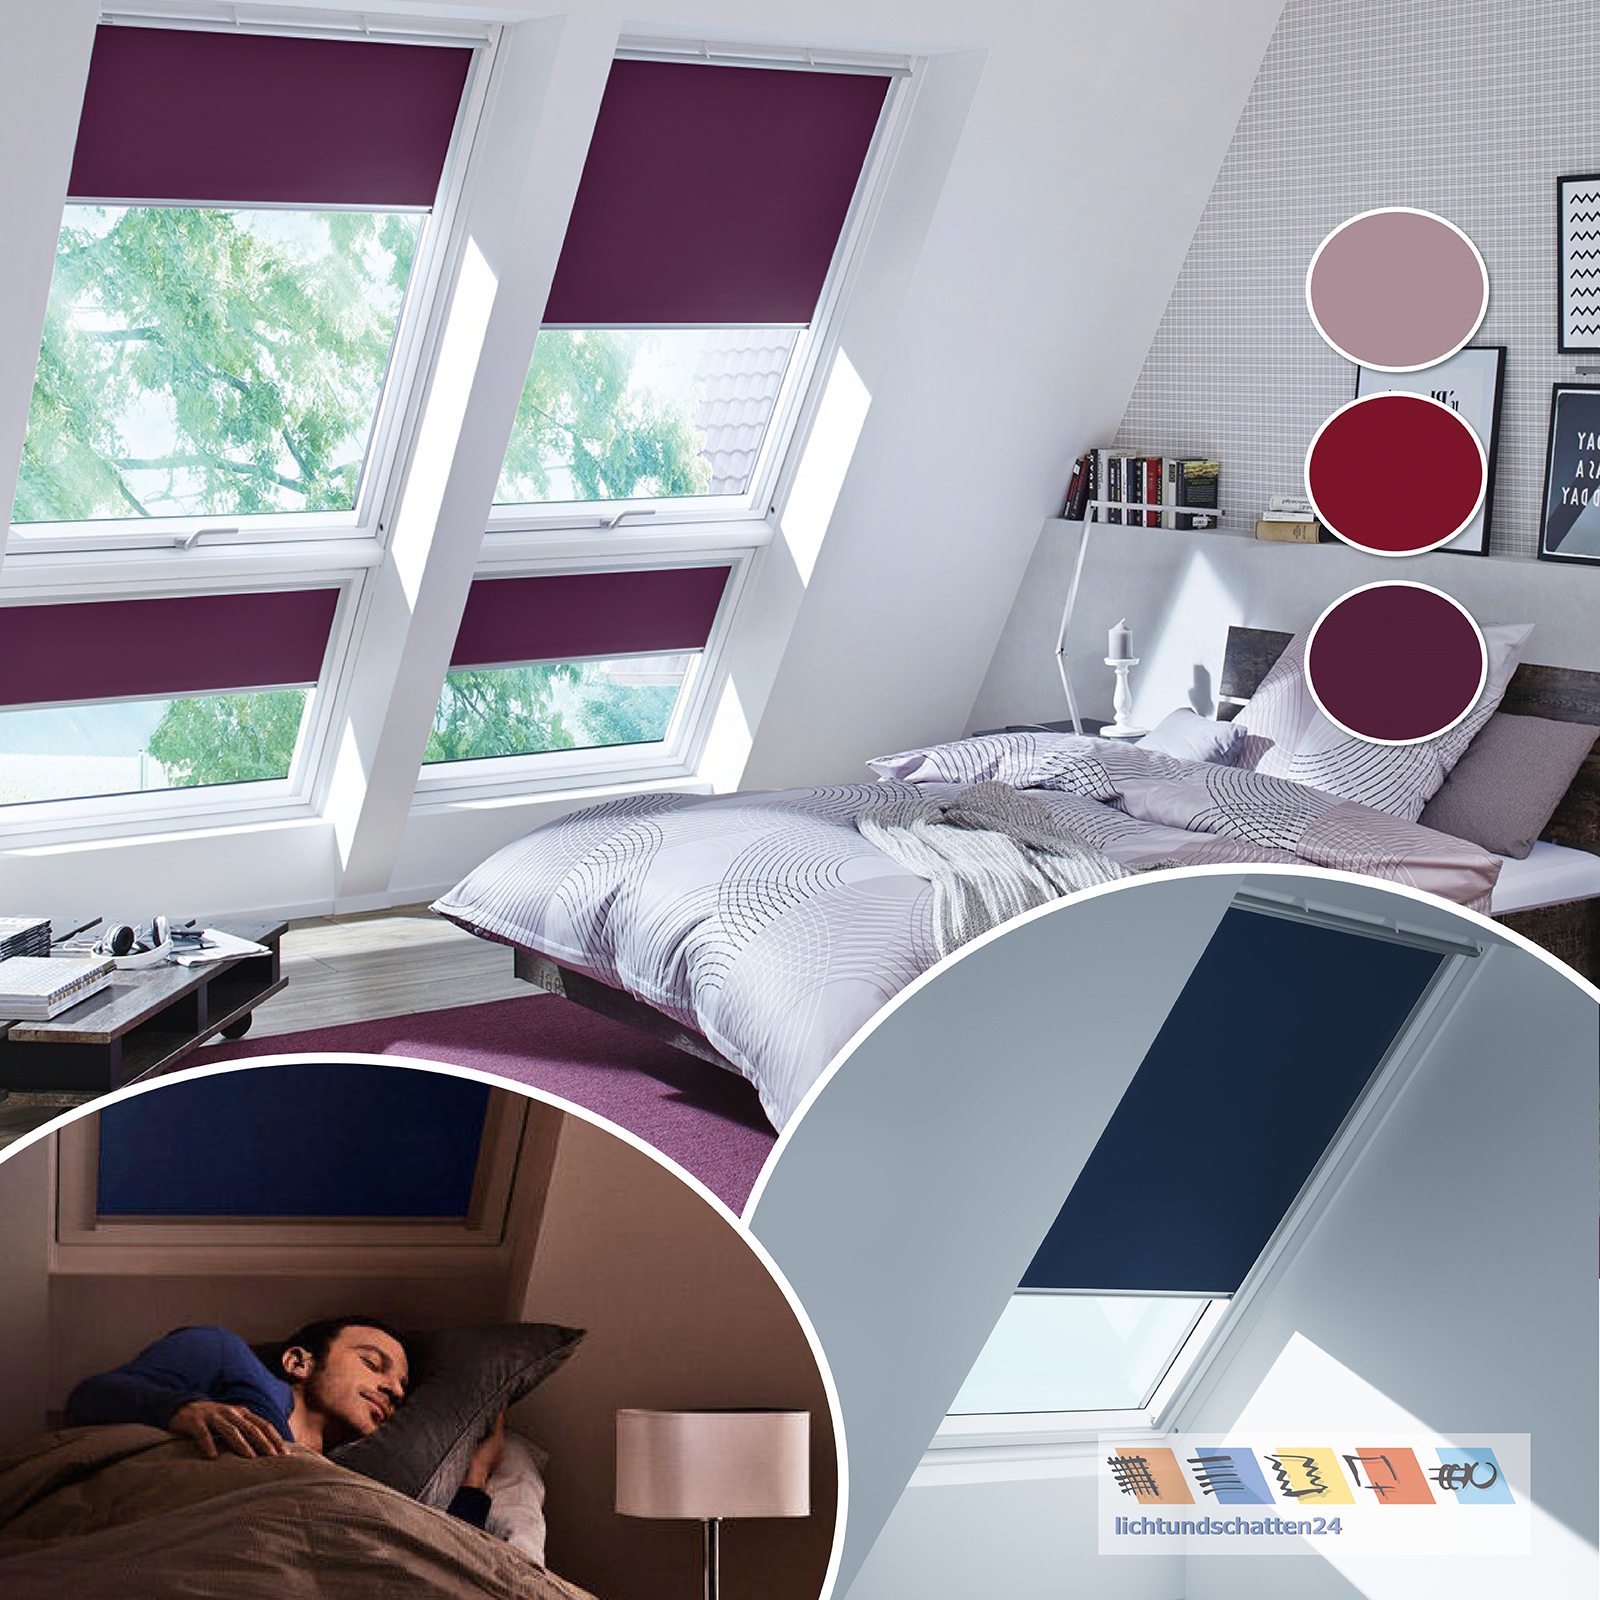 orig velux verdunkelungsrollo mit thermobeschichtung fb 4561 4560 4565 ggu gpu ebay. Black Bedroom Furniture Sets. Home Design Ideas